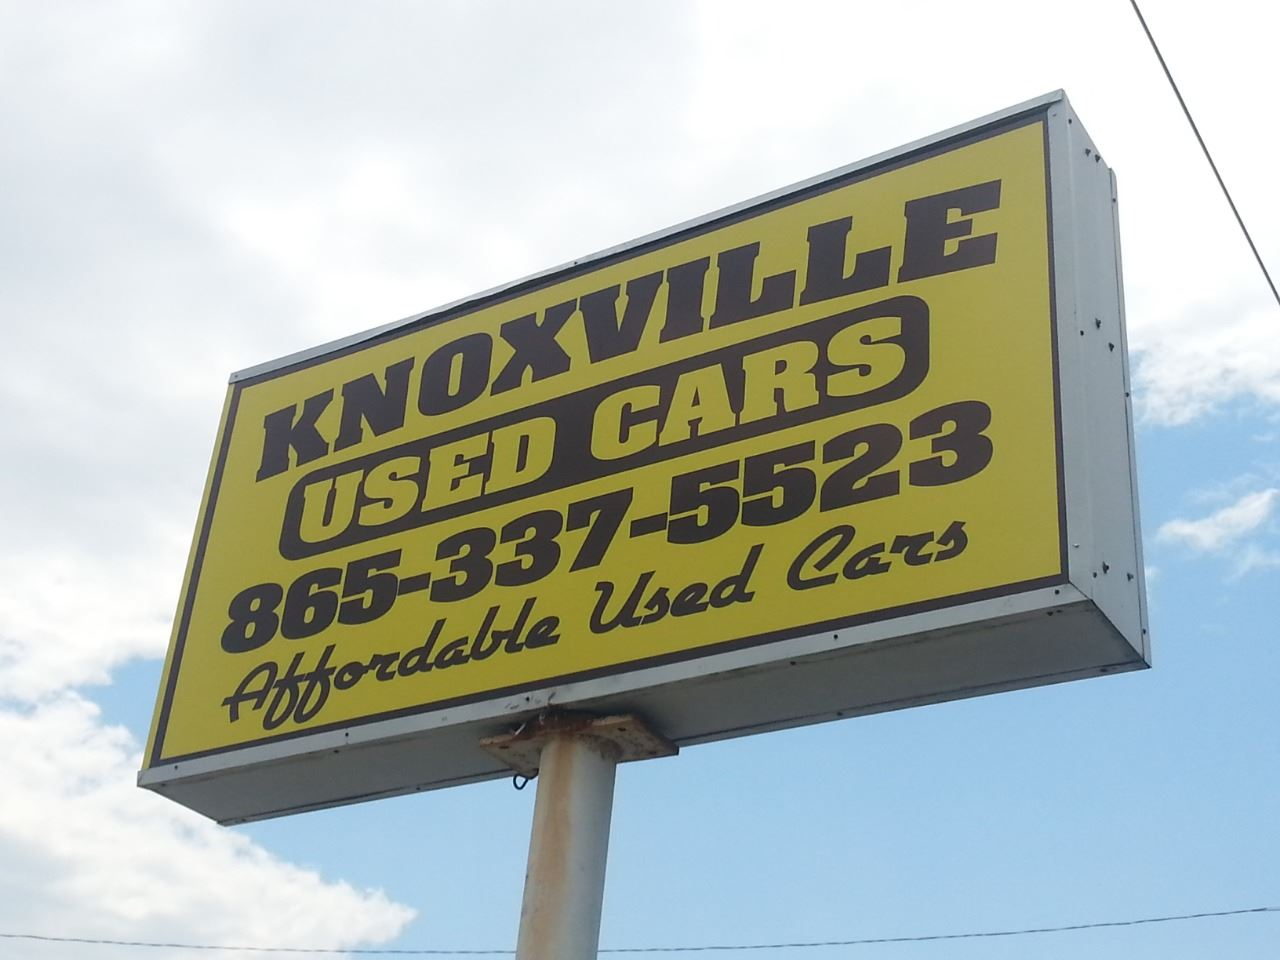 Knoxville Used Cars